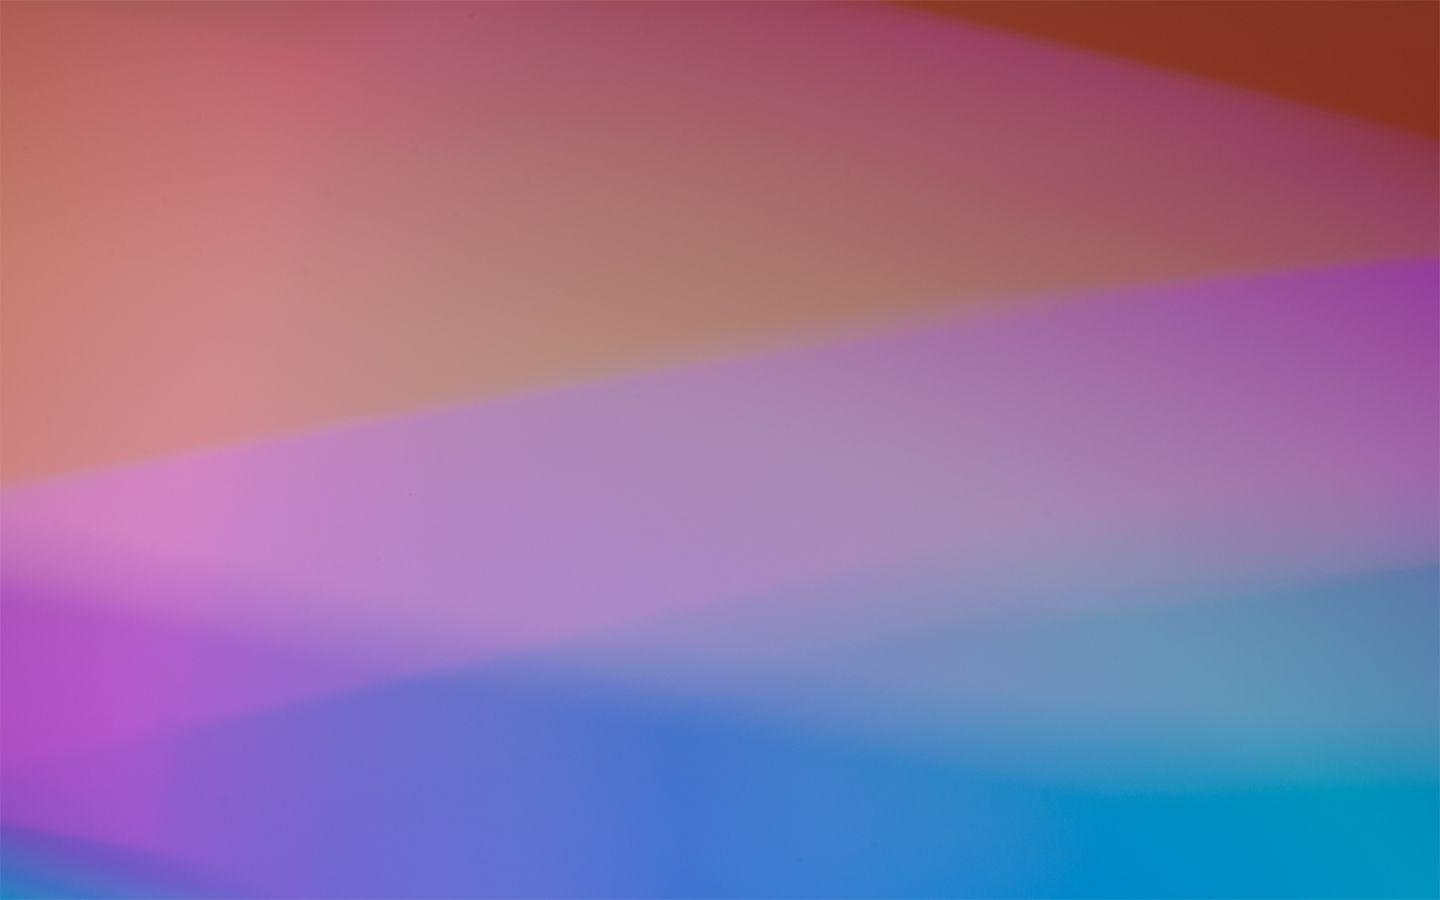 DeviantArt: More Like Simple coloured wallpapers for Macbook Air 13